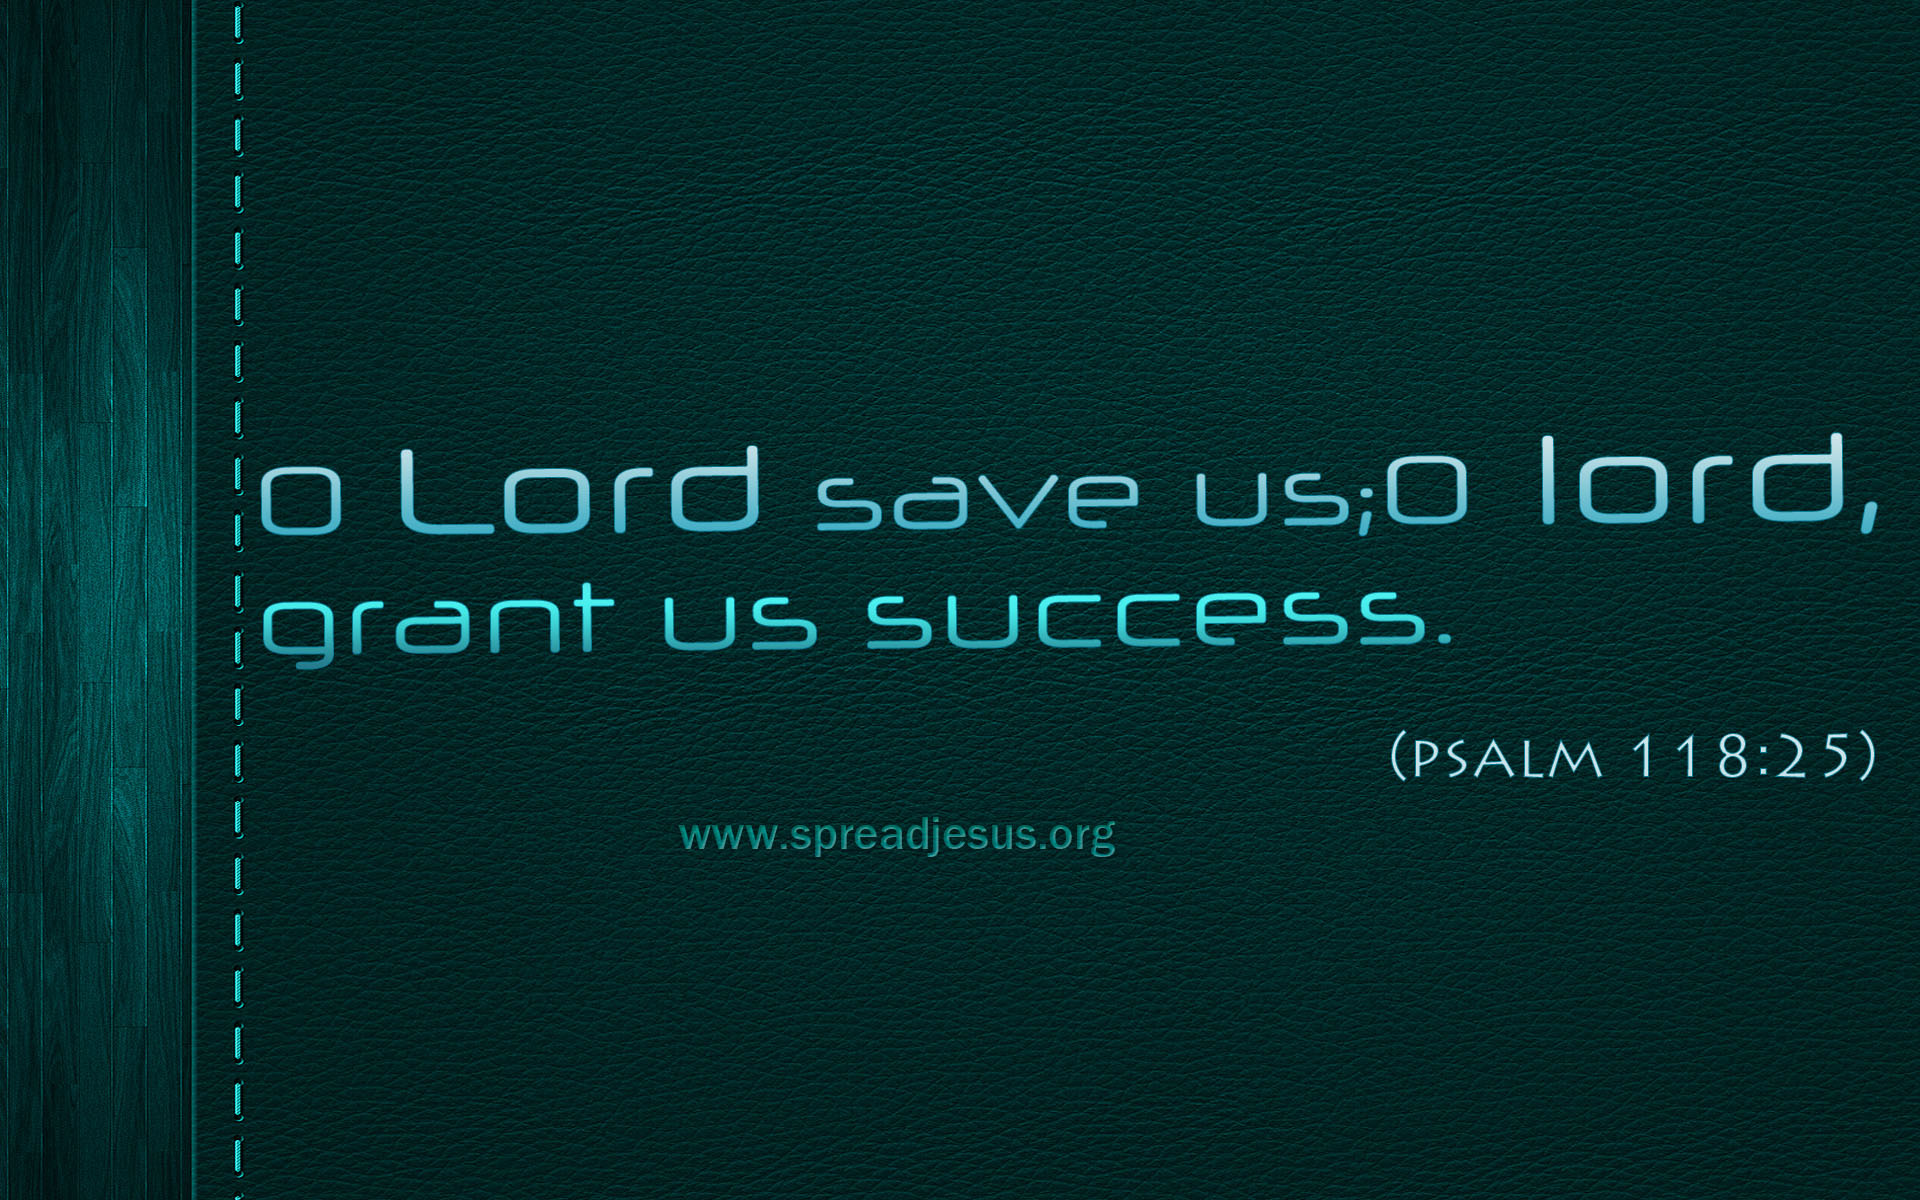 Bible Quotes-PSALMS 118:25 >O Lord save us; O Lord, grant us success.(Psalm 118:25)